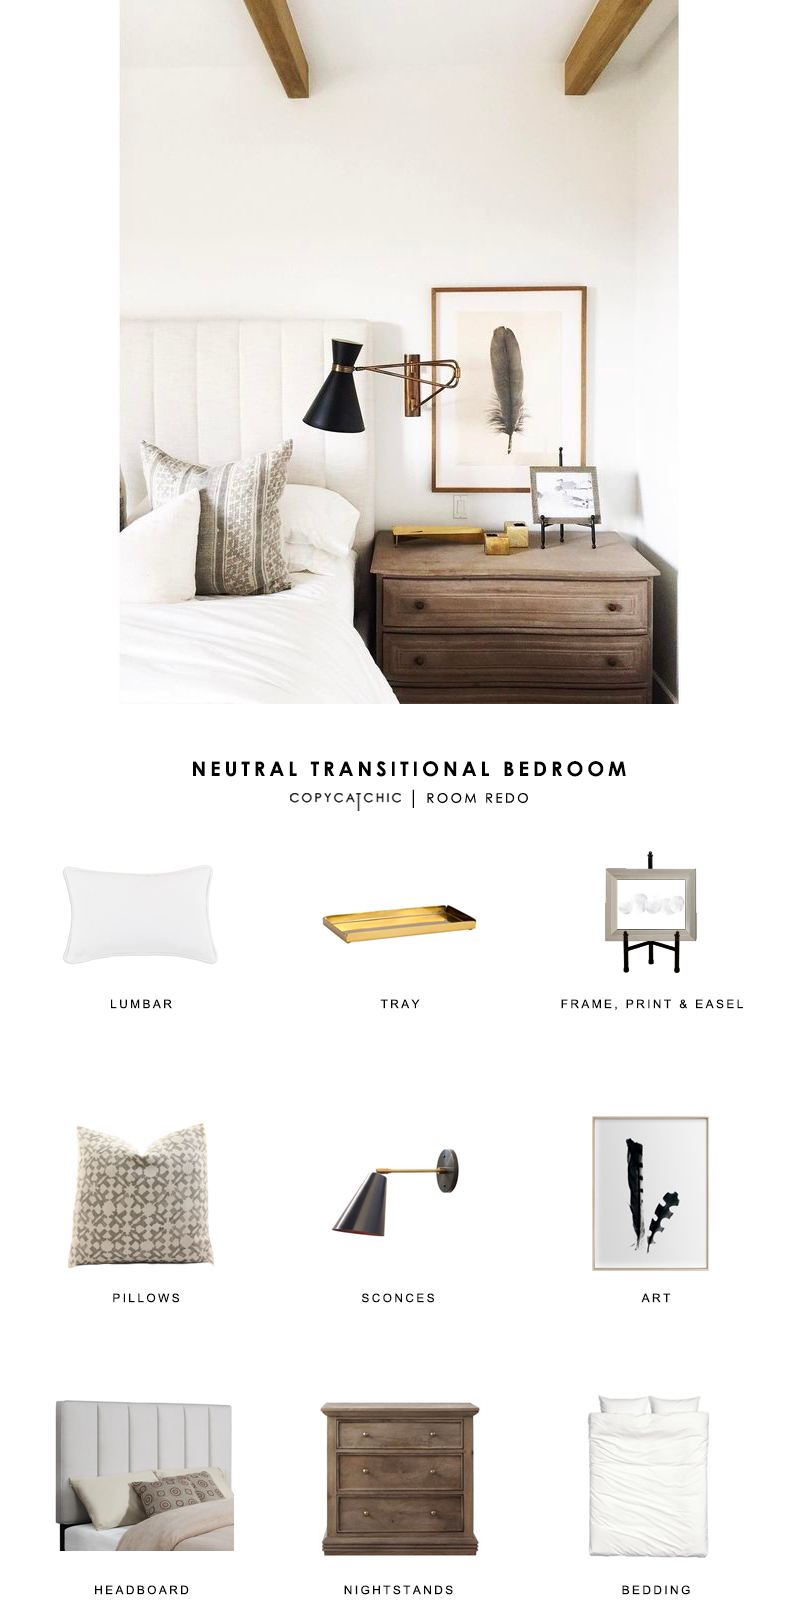 copy cat chic room redo | neutral transitional bedroom - copycatchic